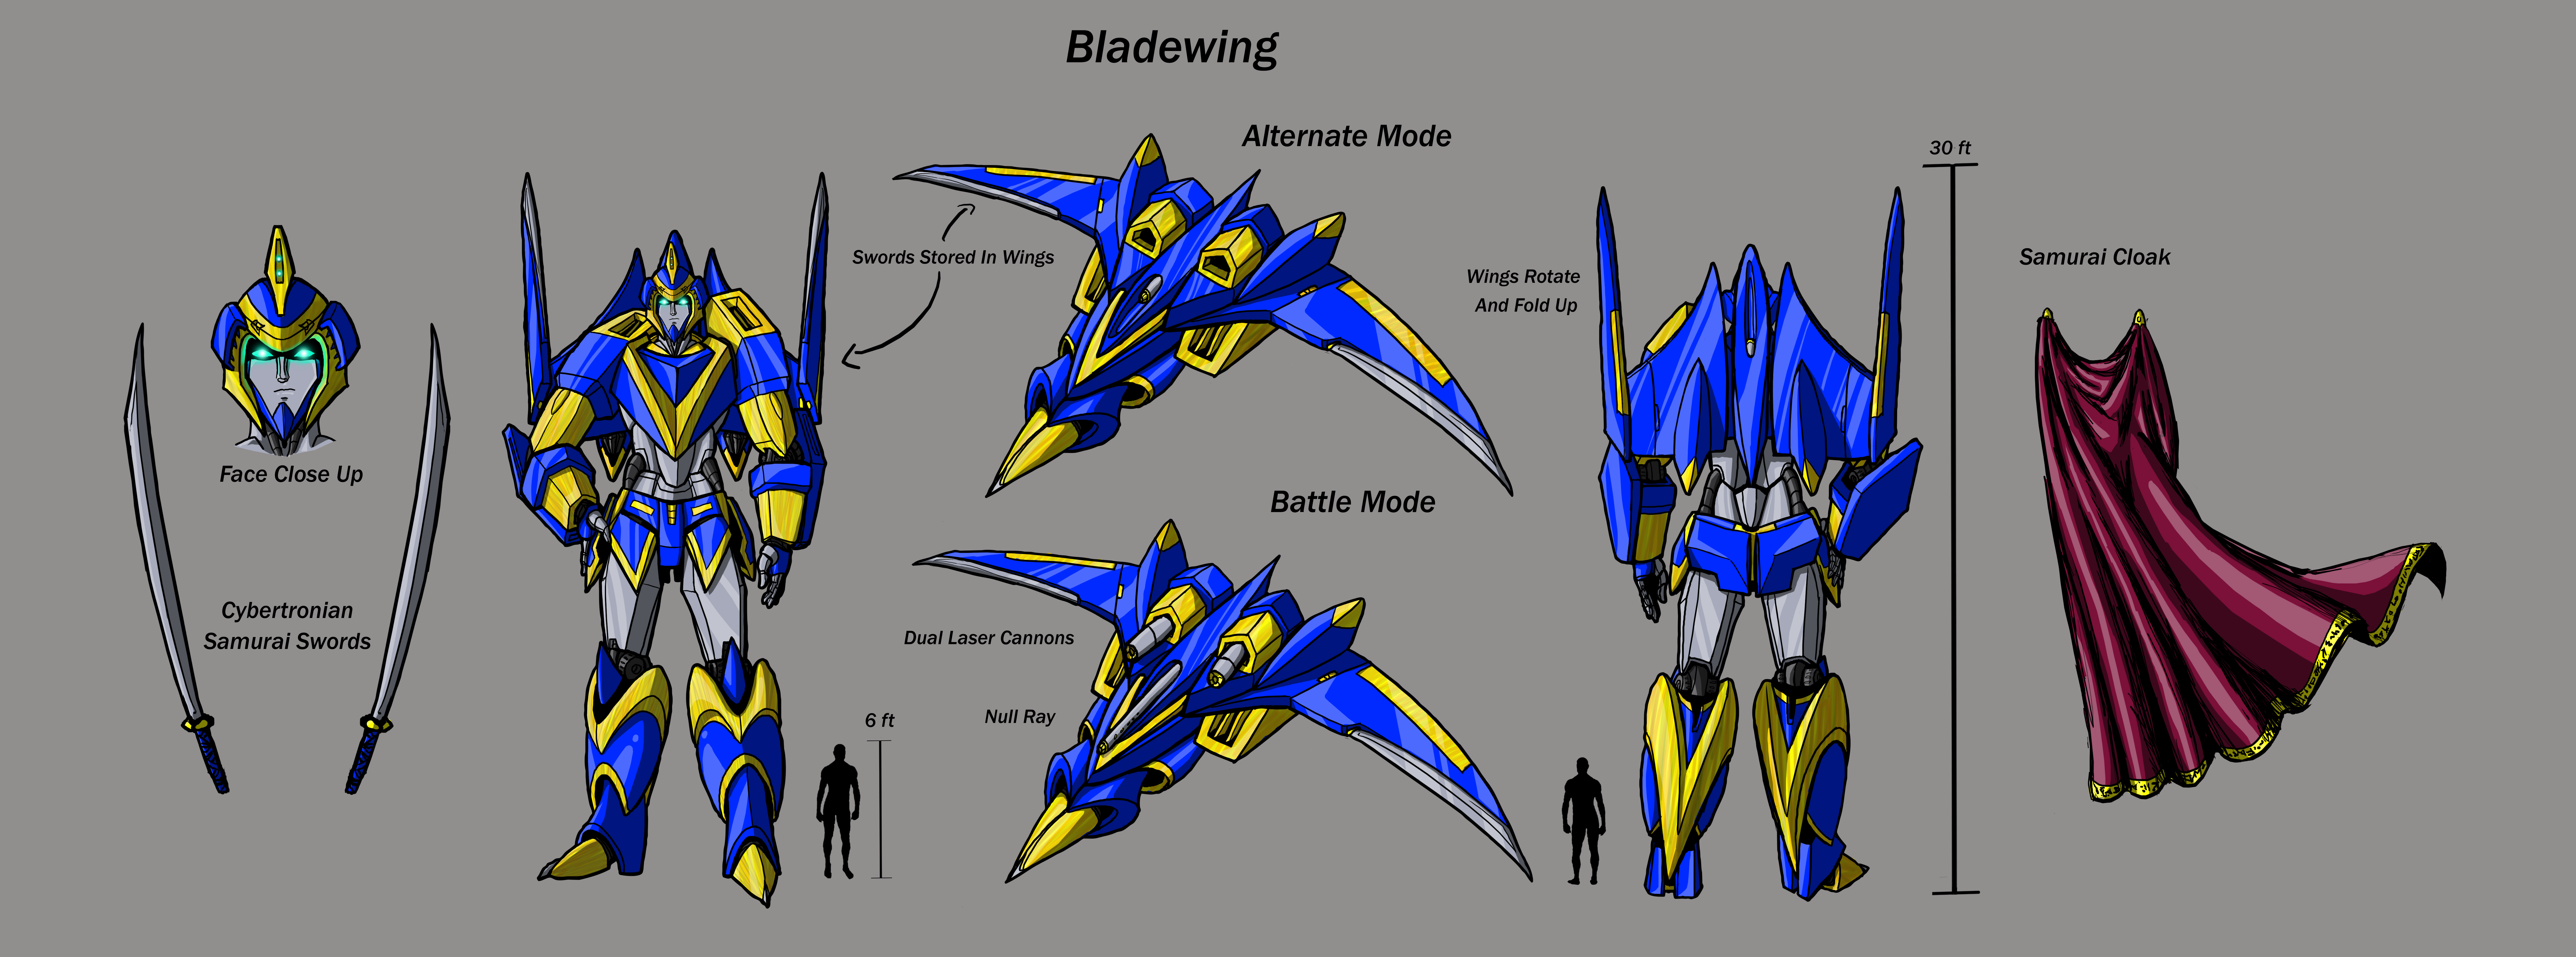 Bladewing Character Sheet Fin by Laserbot